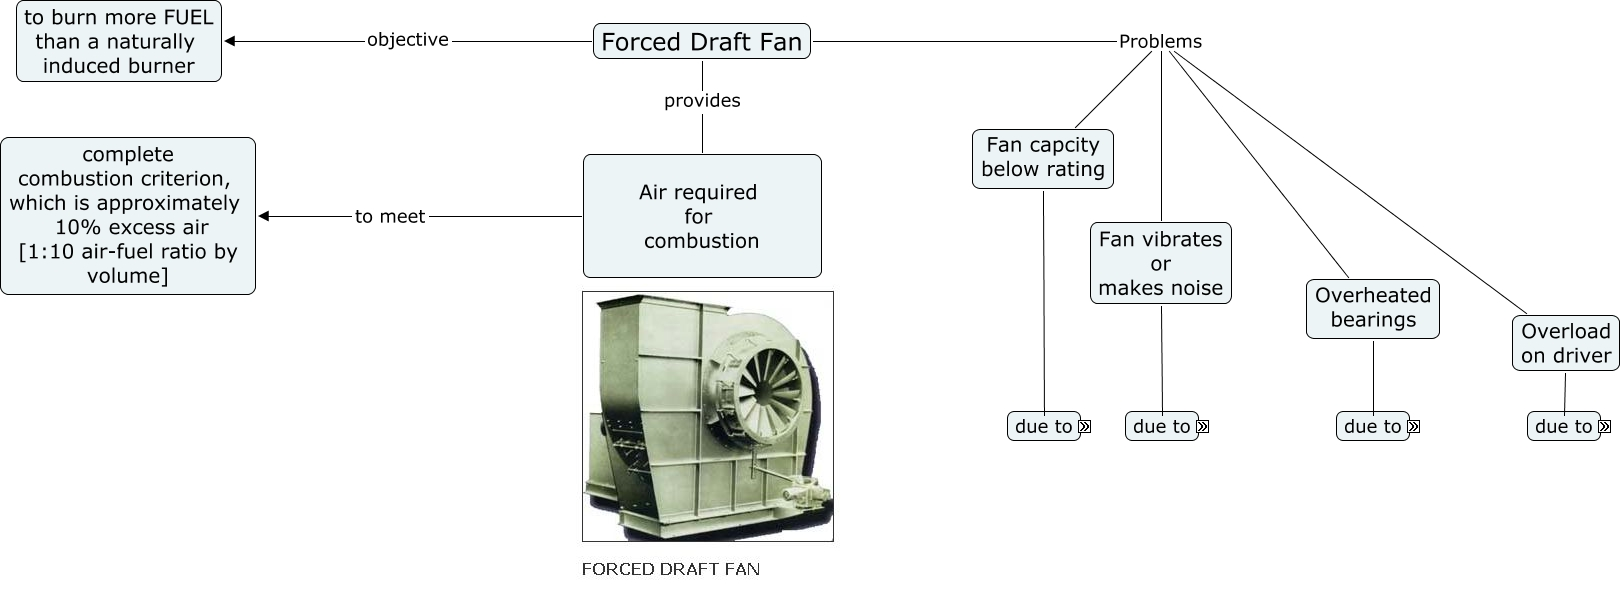 Forced Draft Fan : Forced draft fan what are the objectives problems of